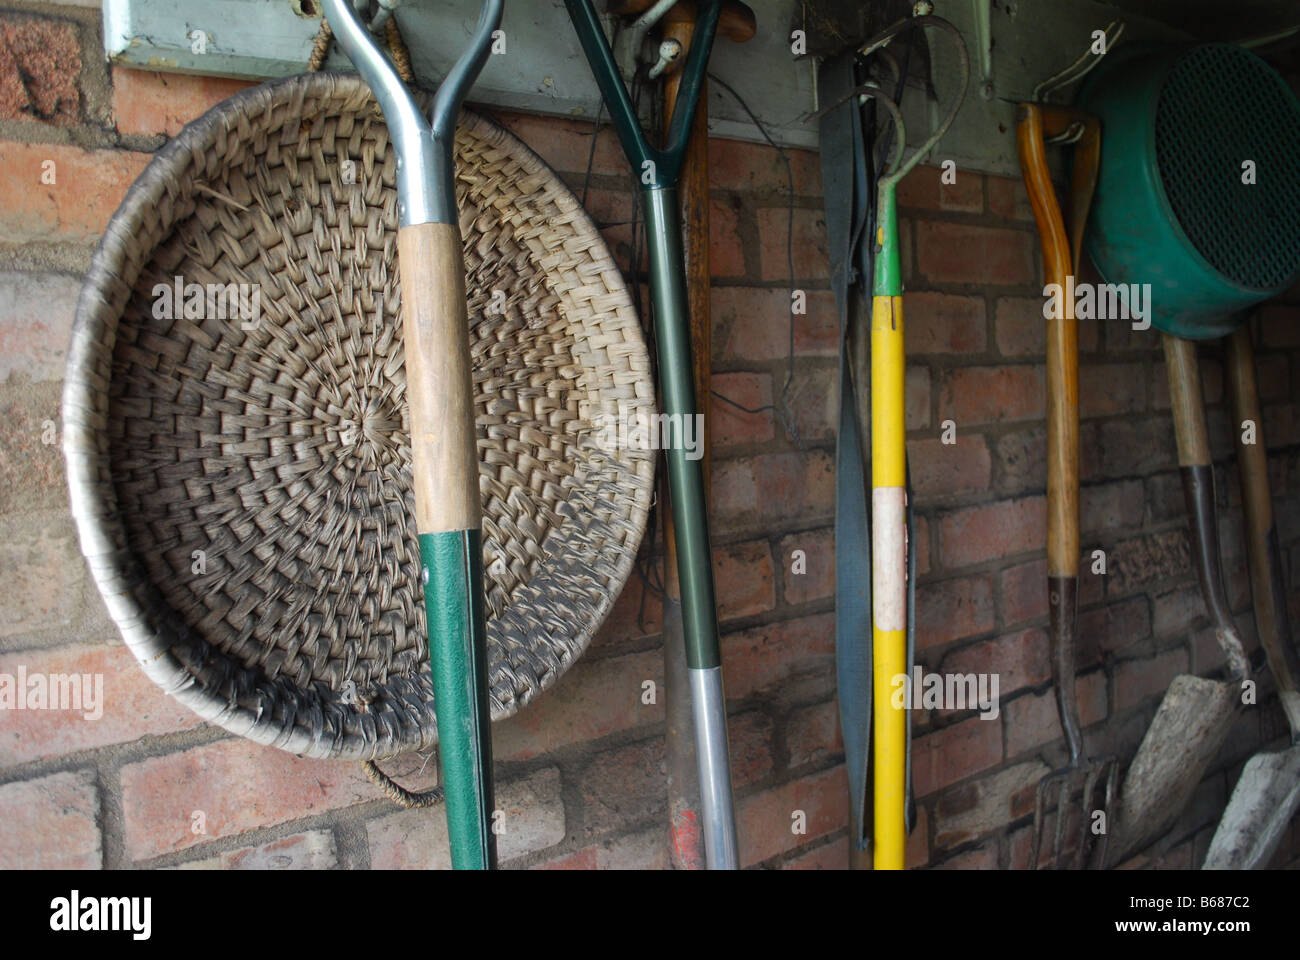 Flat Wicker Basket And Garden Tools Hanging From Hooks In A Brick Built  Shed